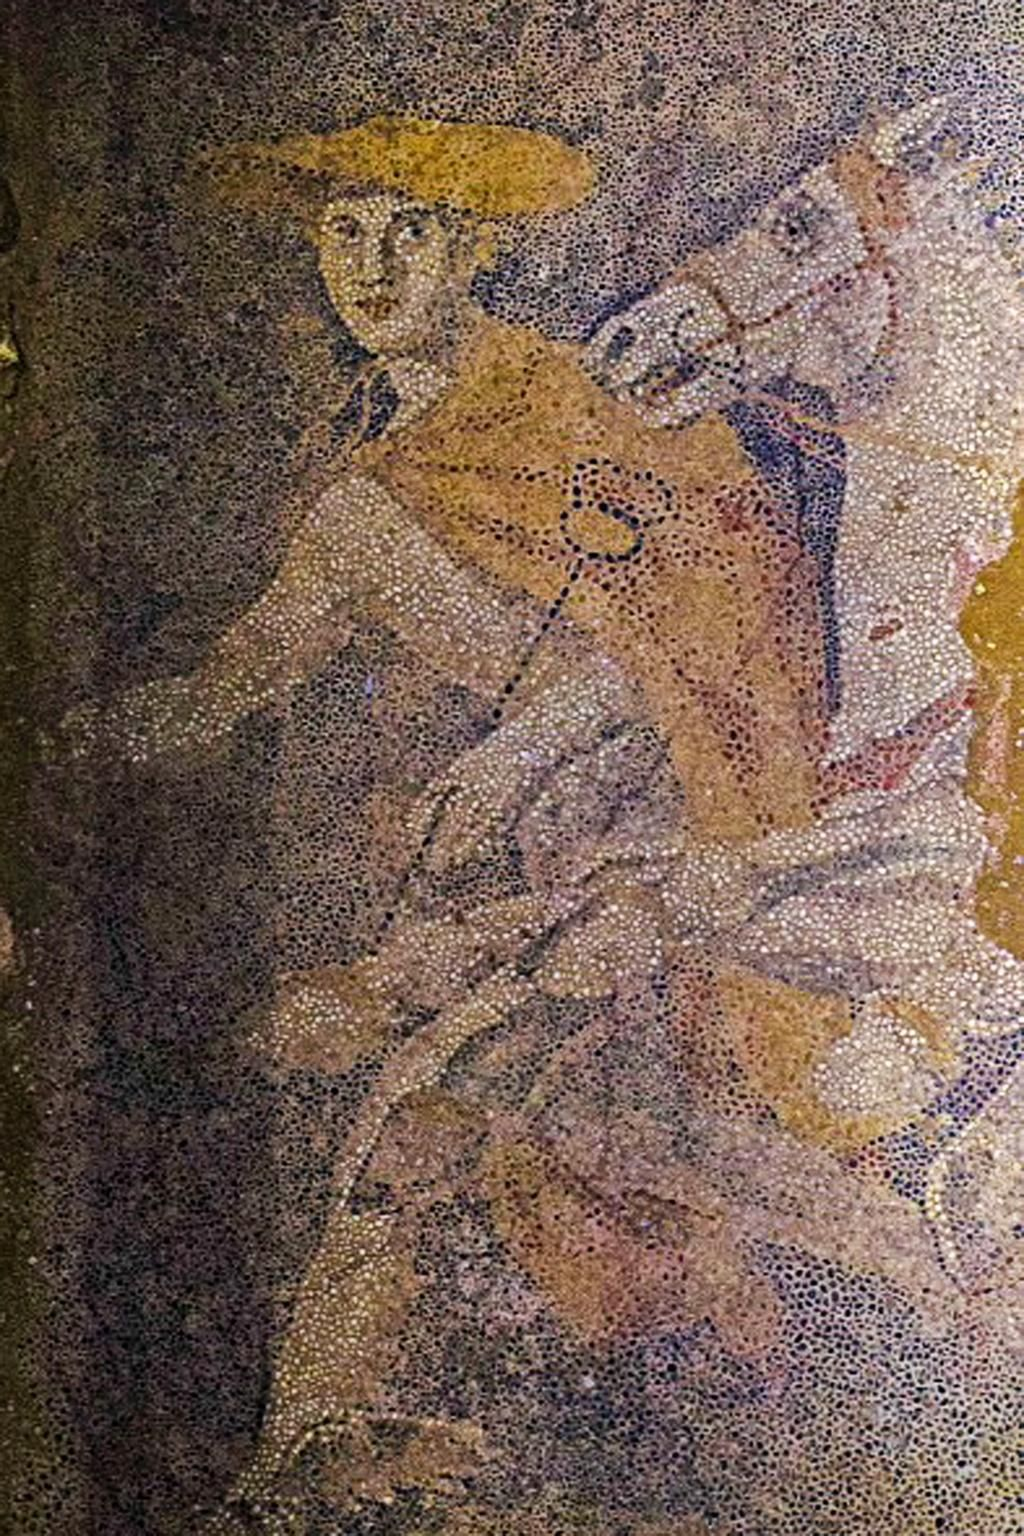 Hermes, the god of thieves, travellers, trade and a guide to the underworld, is depicted in the mosaic